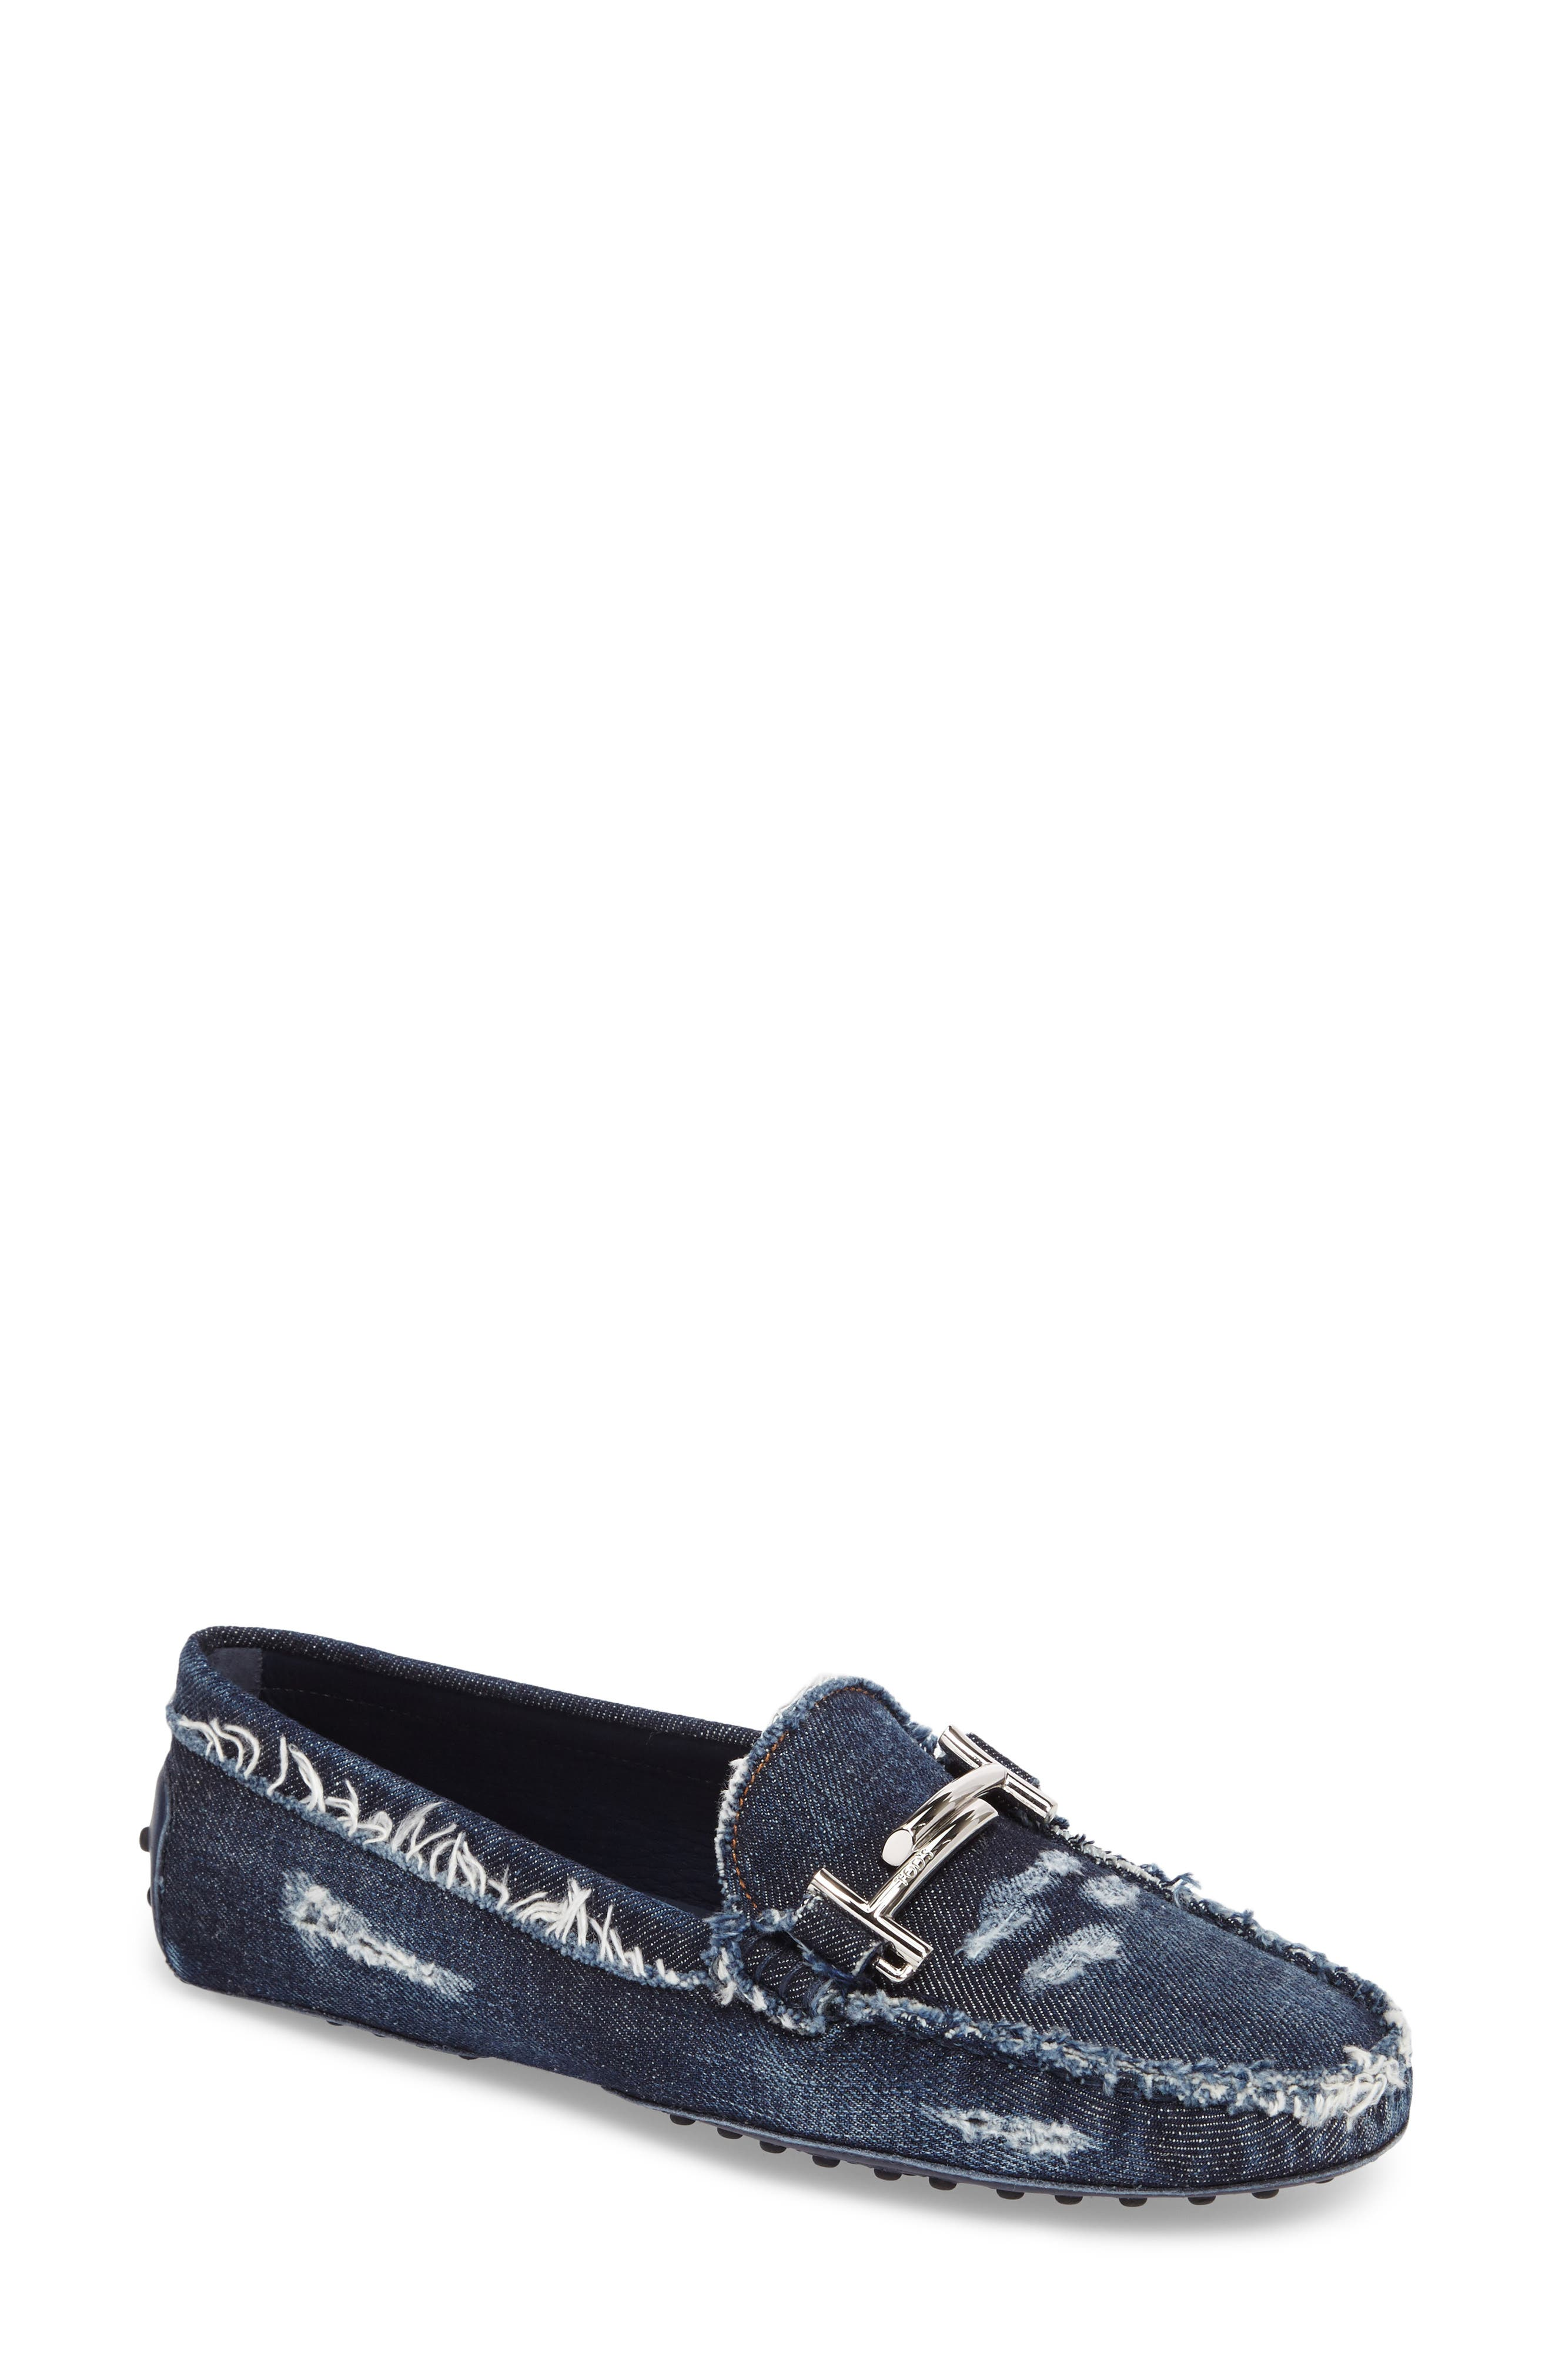 Gommino Double T Loafer,                         Main,                         color, Denim Blue